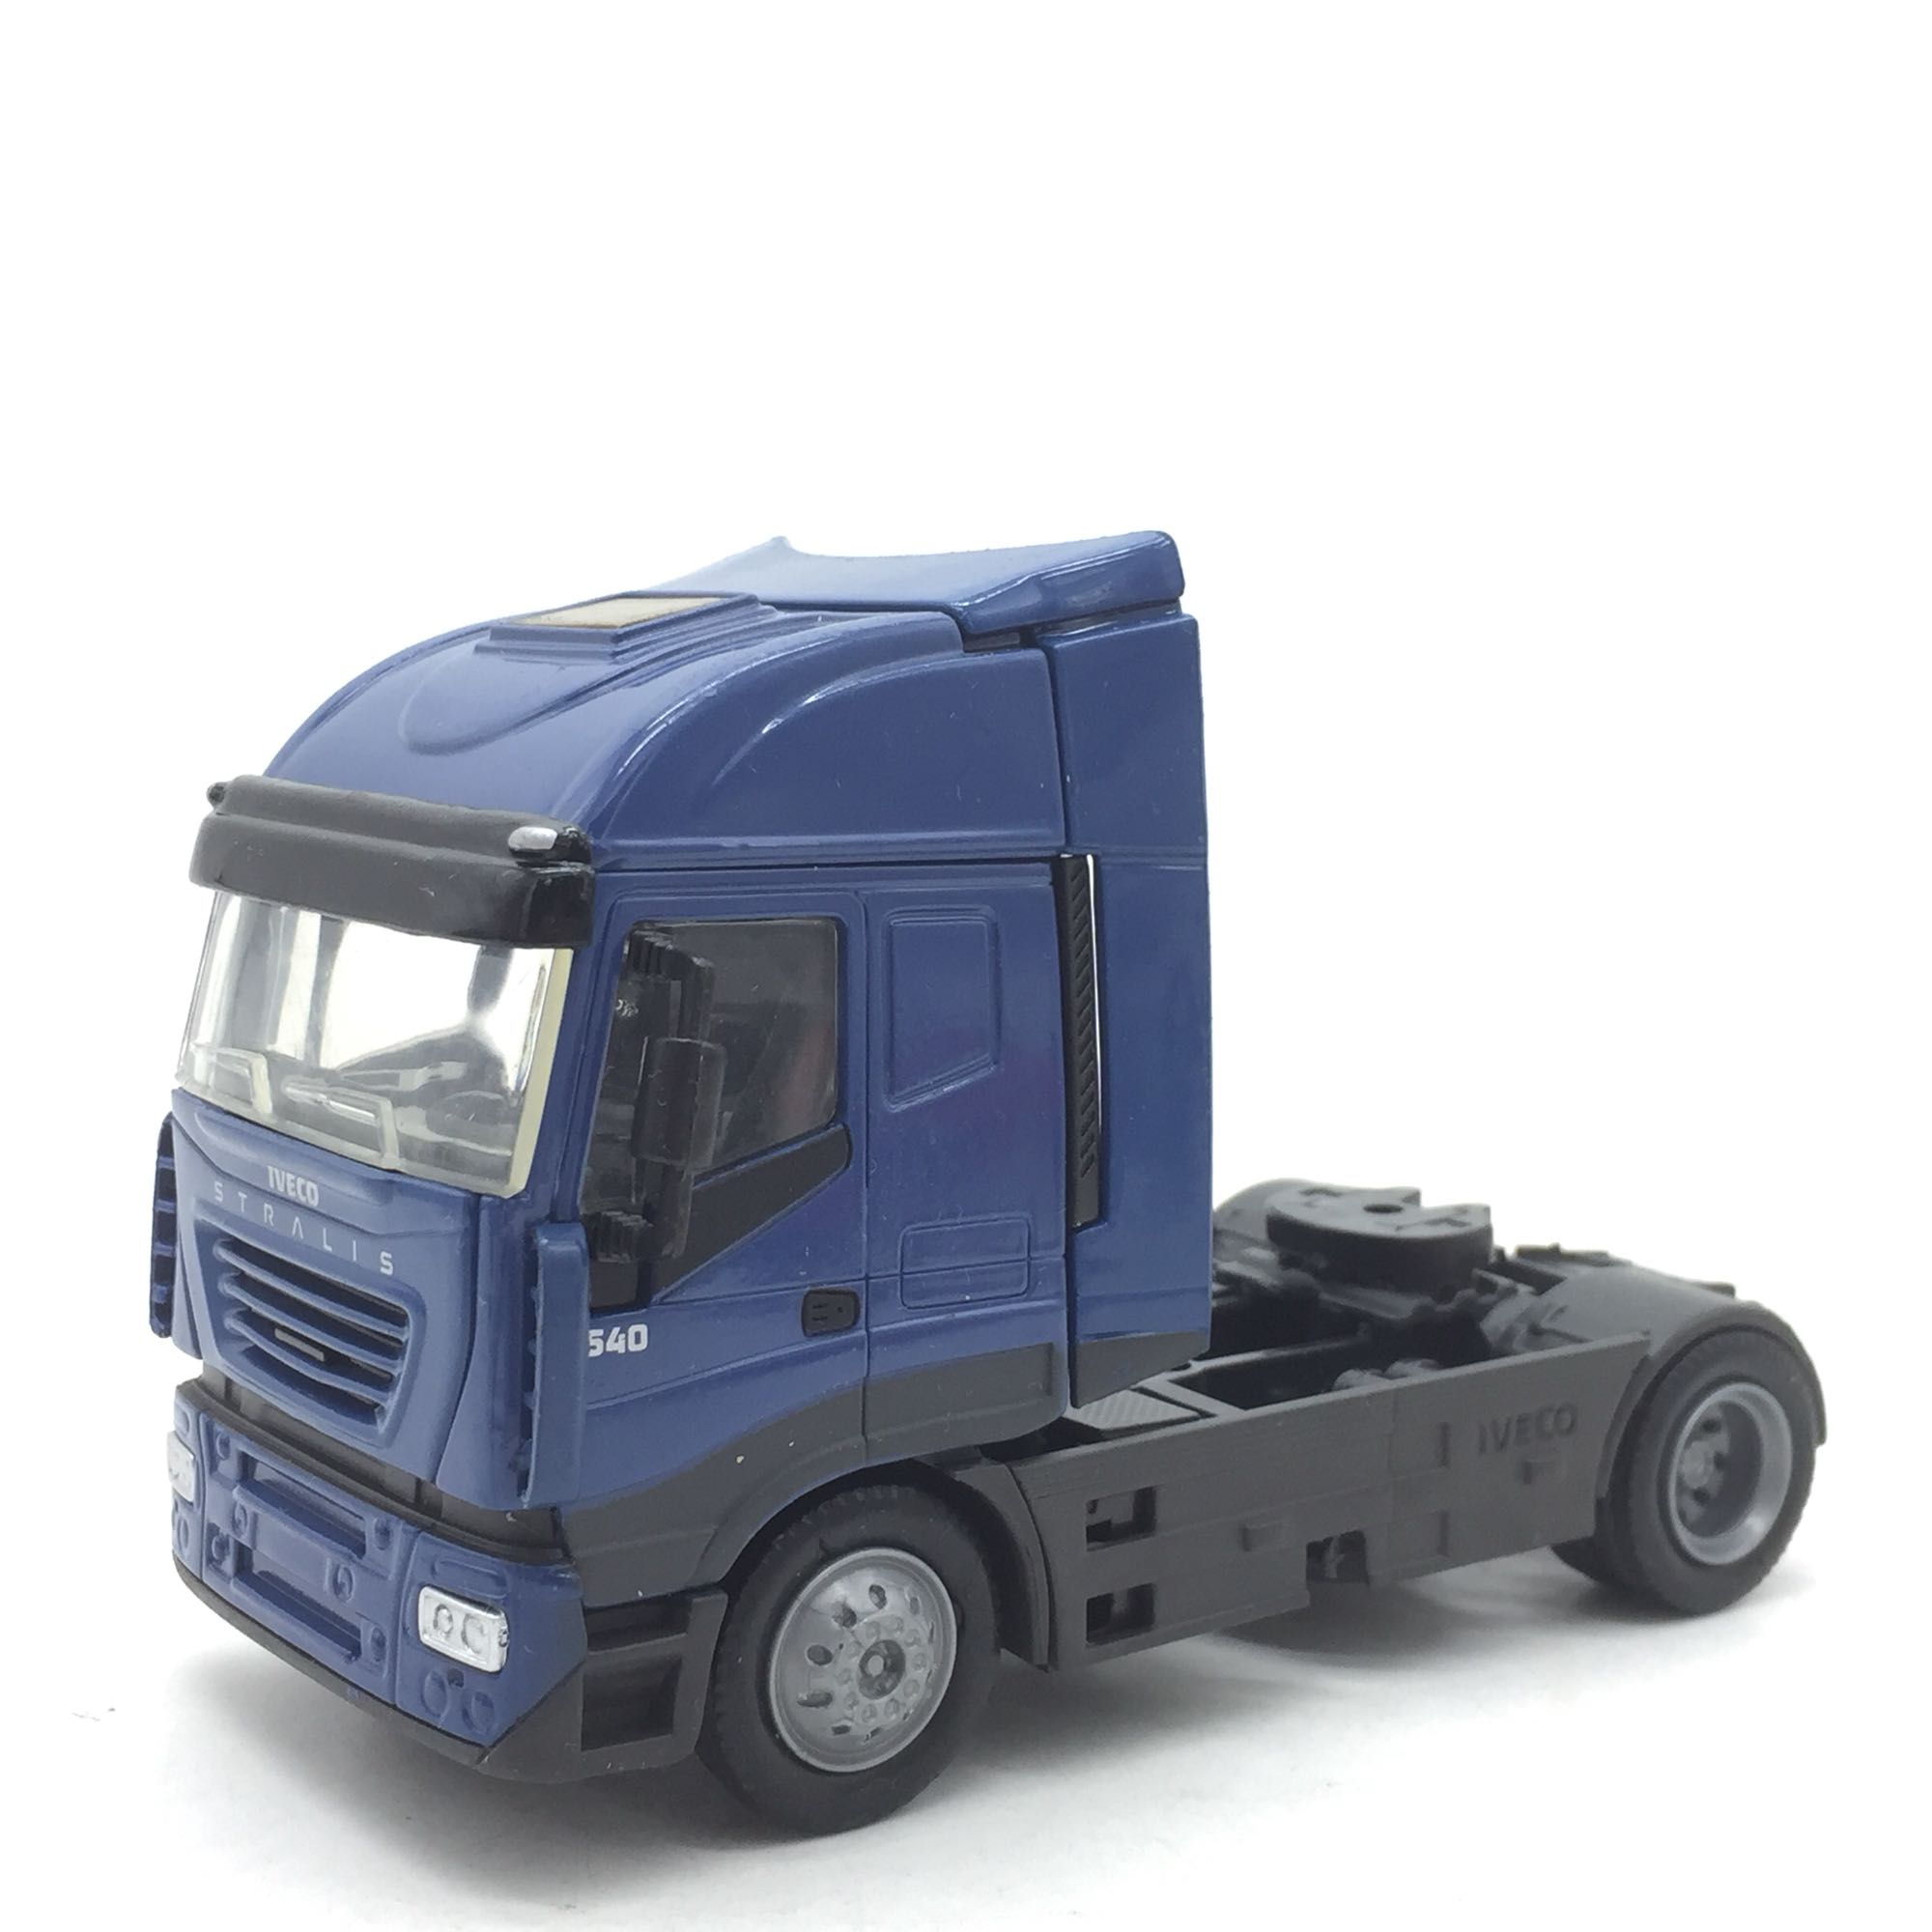 1:43 Sacle Alloy Iveco Transport Vehicles,high Simulation Iveco Heavy Duty Trailer,Collecting Alloy Car Models,free Shipping